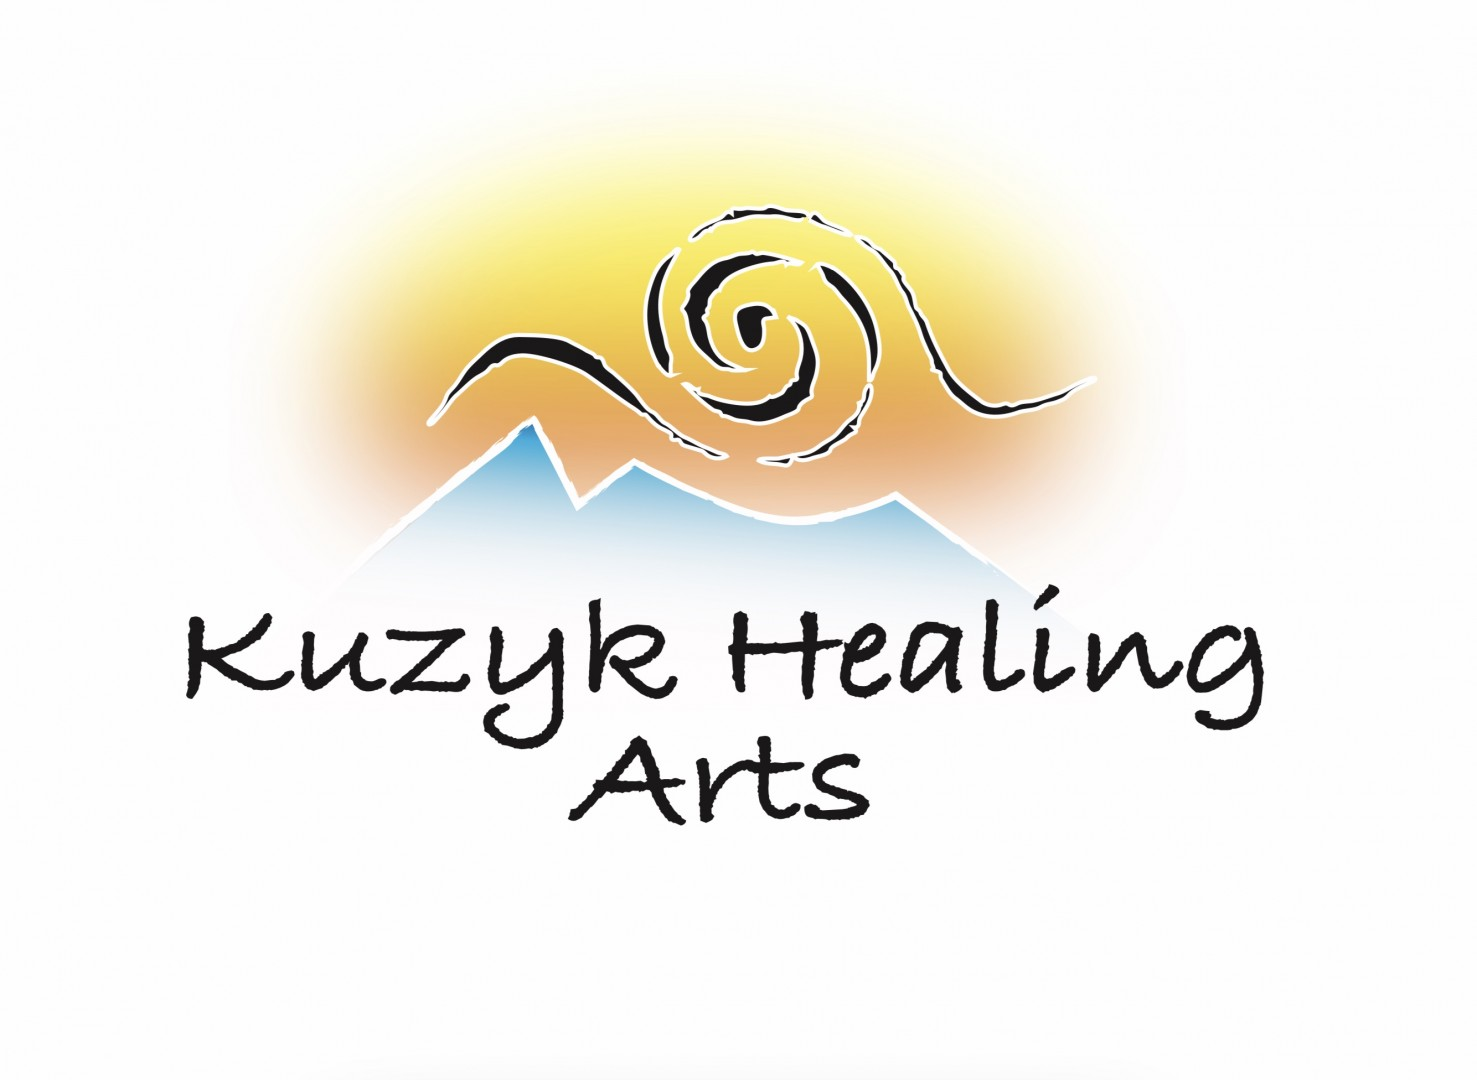 Distance BodyTalk Sessions - Kuzyk Healing Arts in Sandpoint, Idaho